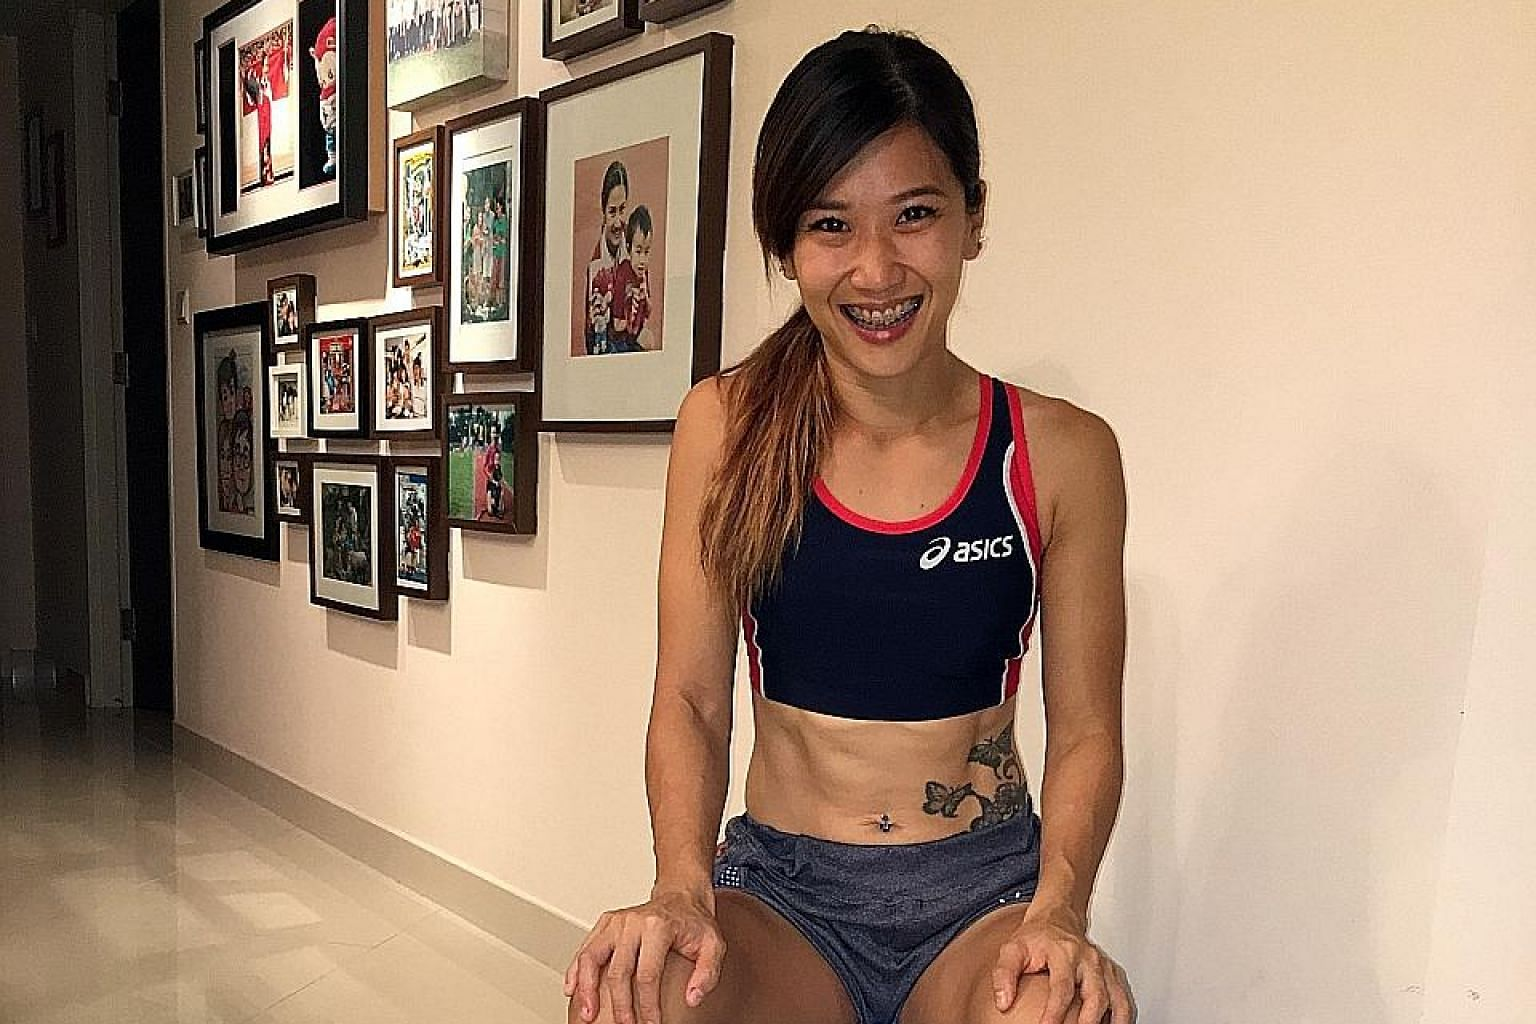 Ms Yang says her most prized possession is the silver medal she won at last year's SEA Games. It is her first medal after 10 years of failure in two previous SEA Games.